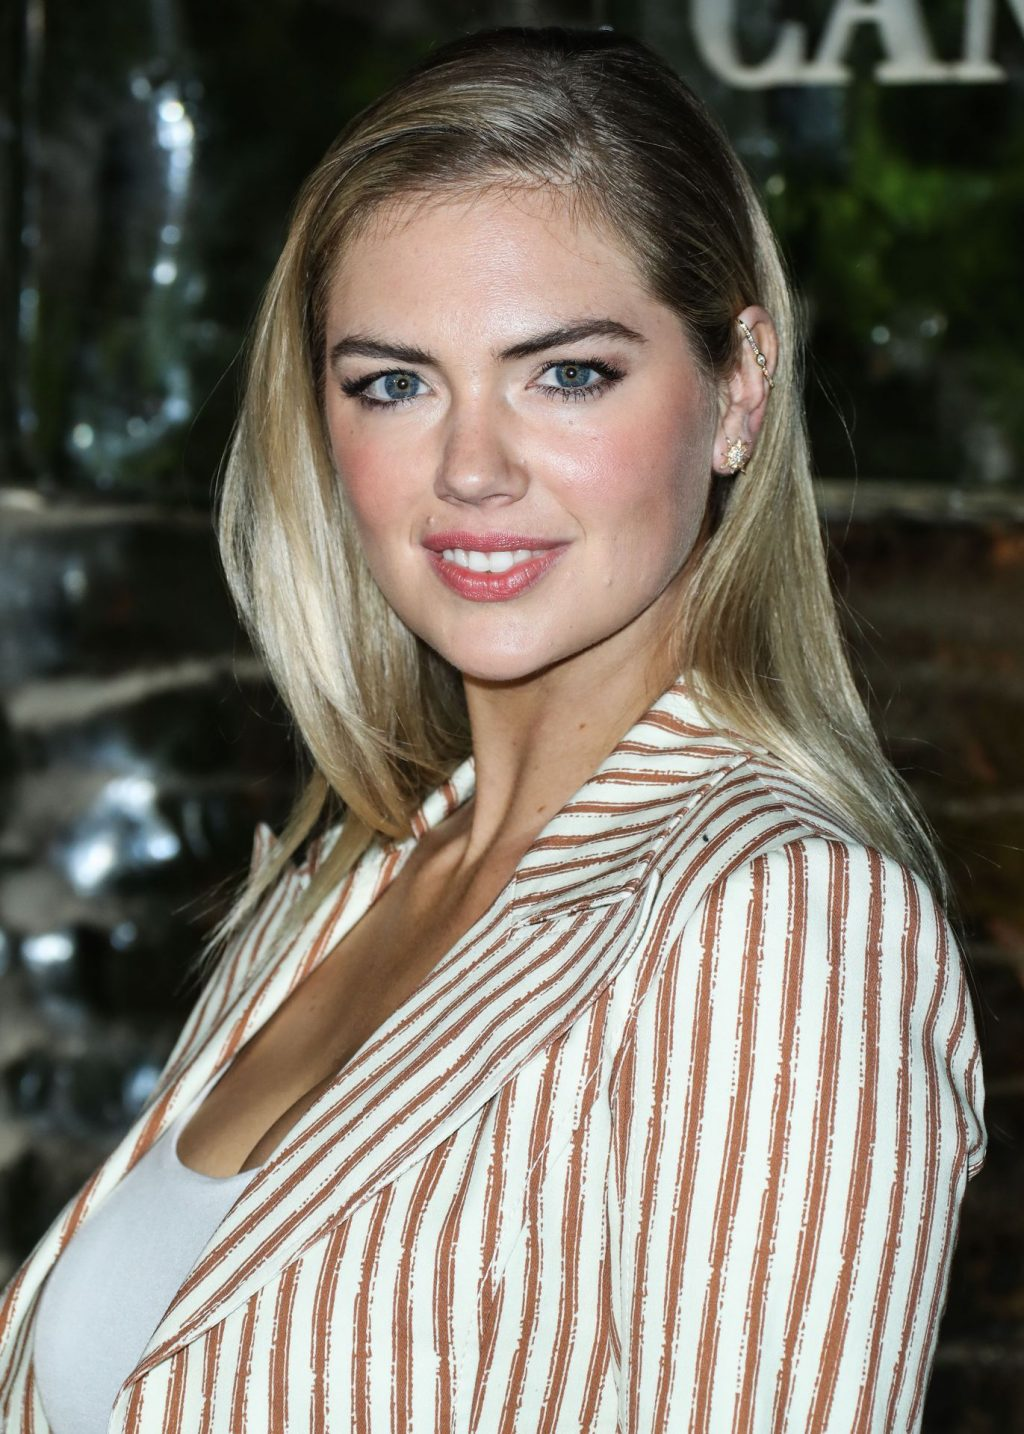 Kate Upton Sexy The Fappening Blog 91 1024x1434 - Kate Upton Attends Canada Goose And Vogue Cocktails & Conversations (104 Photos)